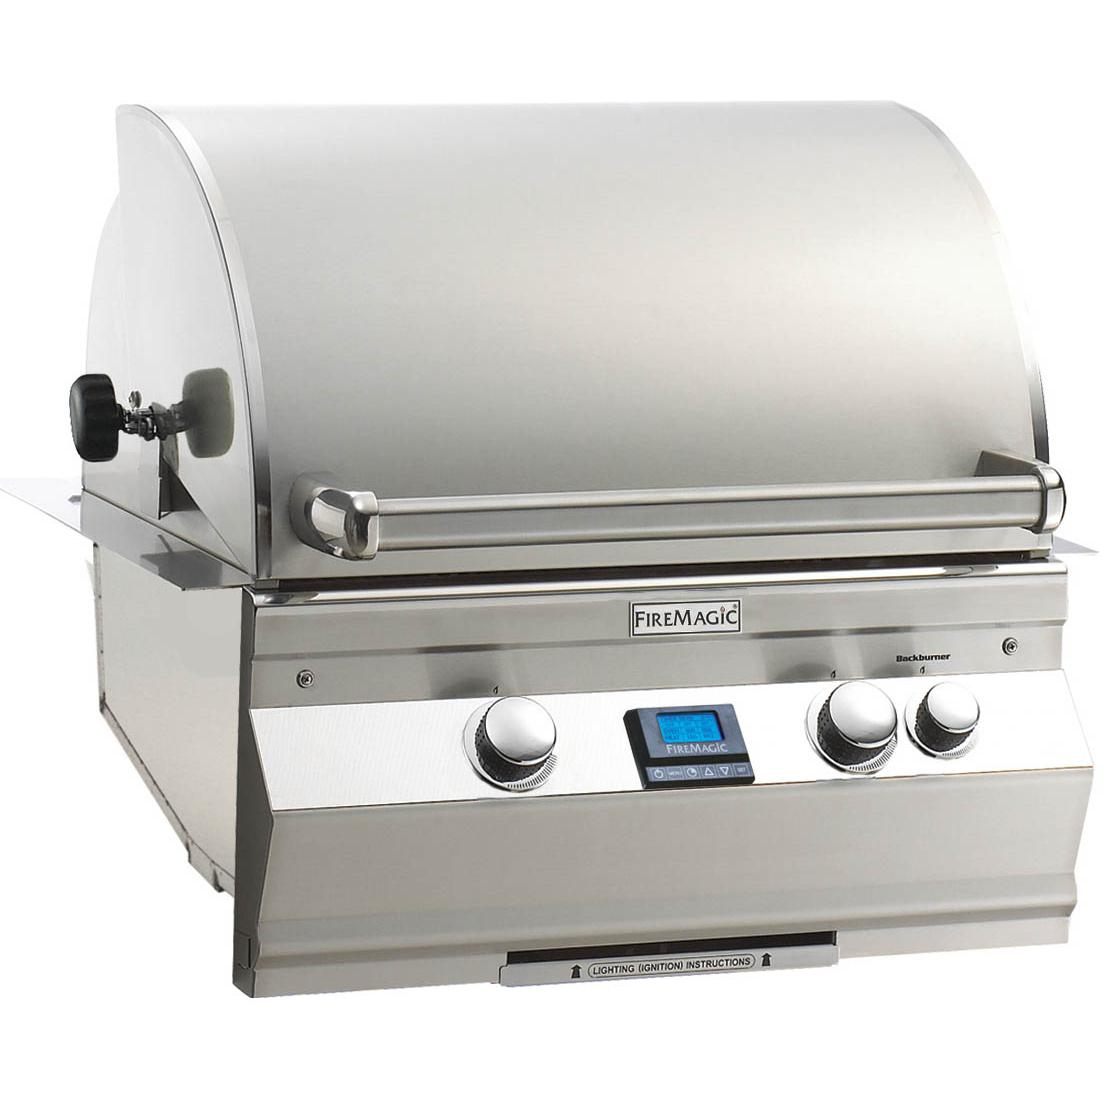 Fire Magic Aurora A430i Built-In Natural Gas Grill With Rotisserie - A430i-6E1N 2893828